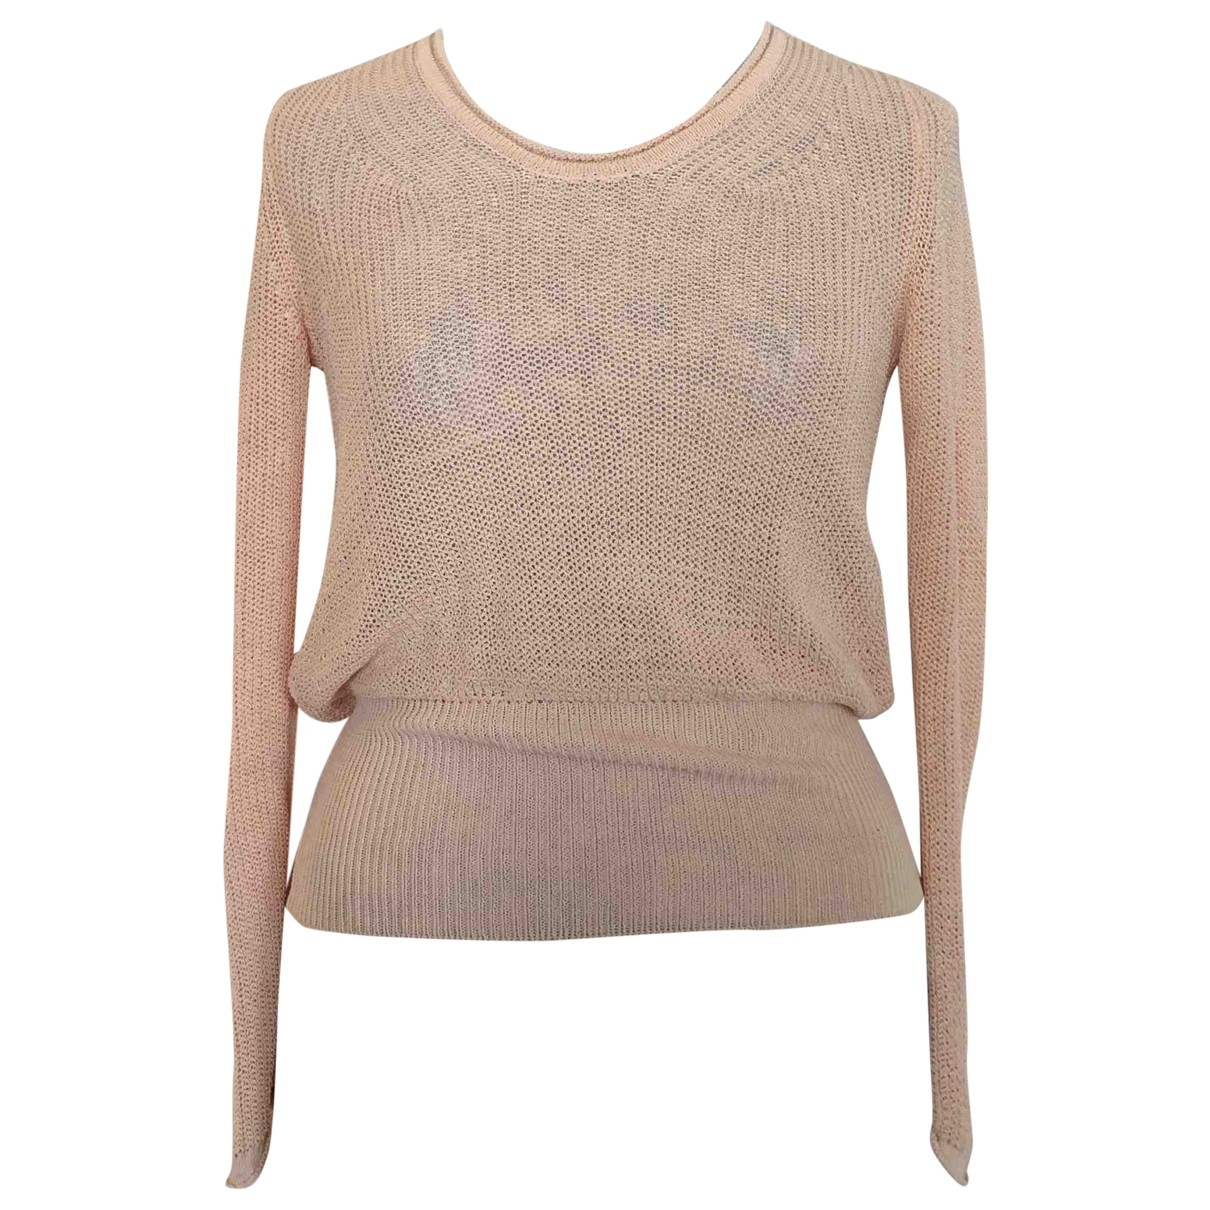 Repetto \N Pink Cotton Knitwear for Women 36 FR